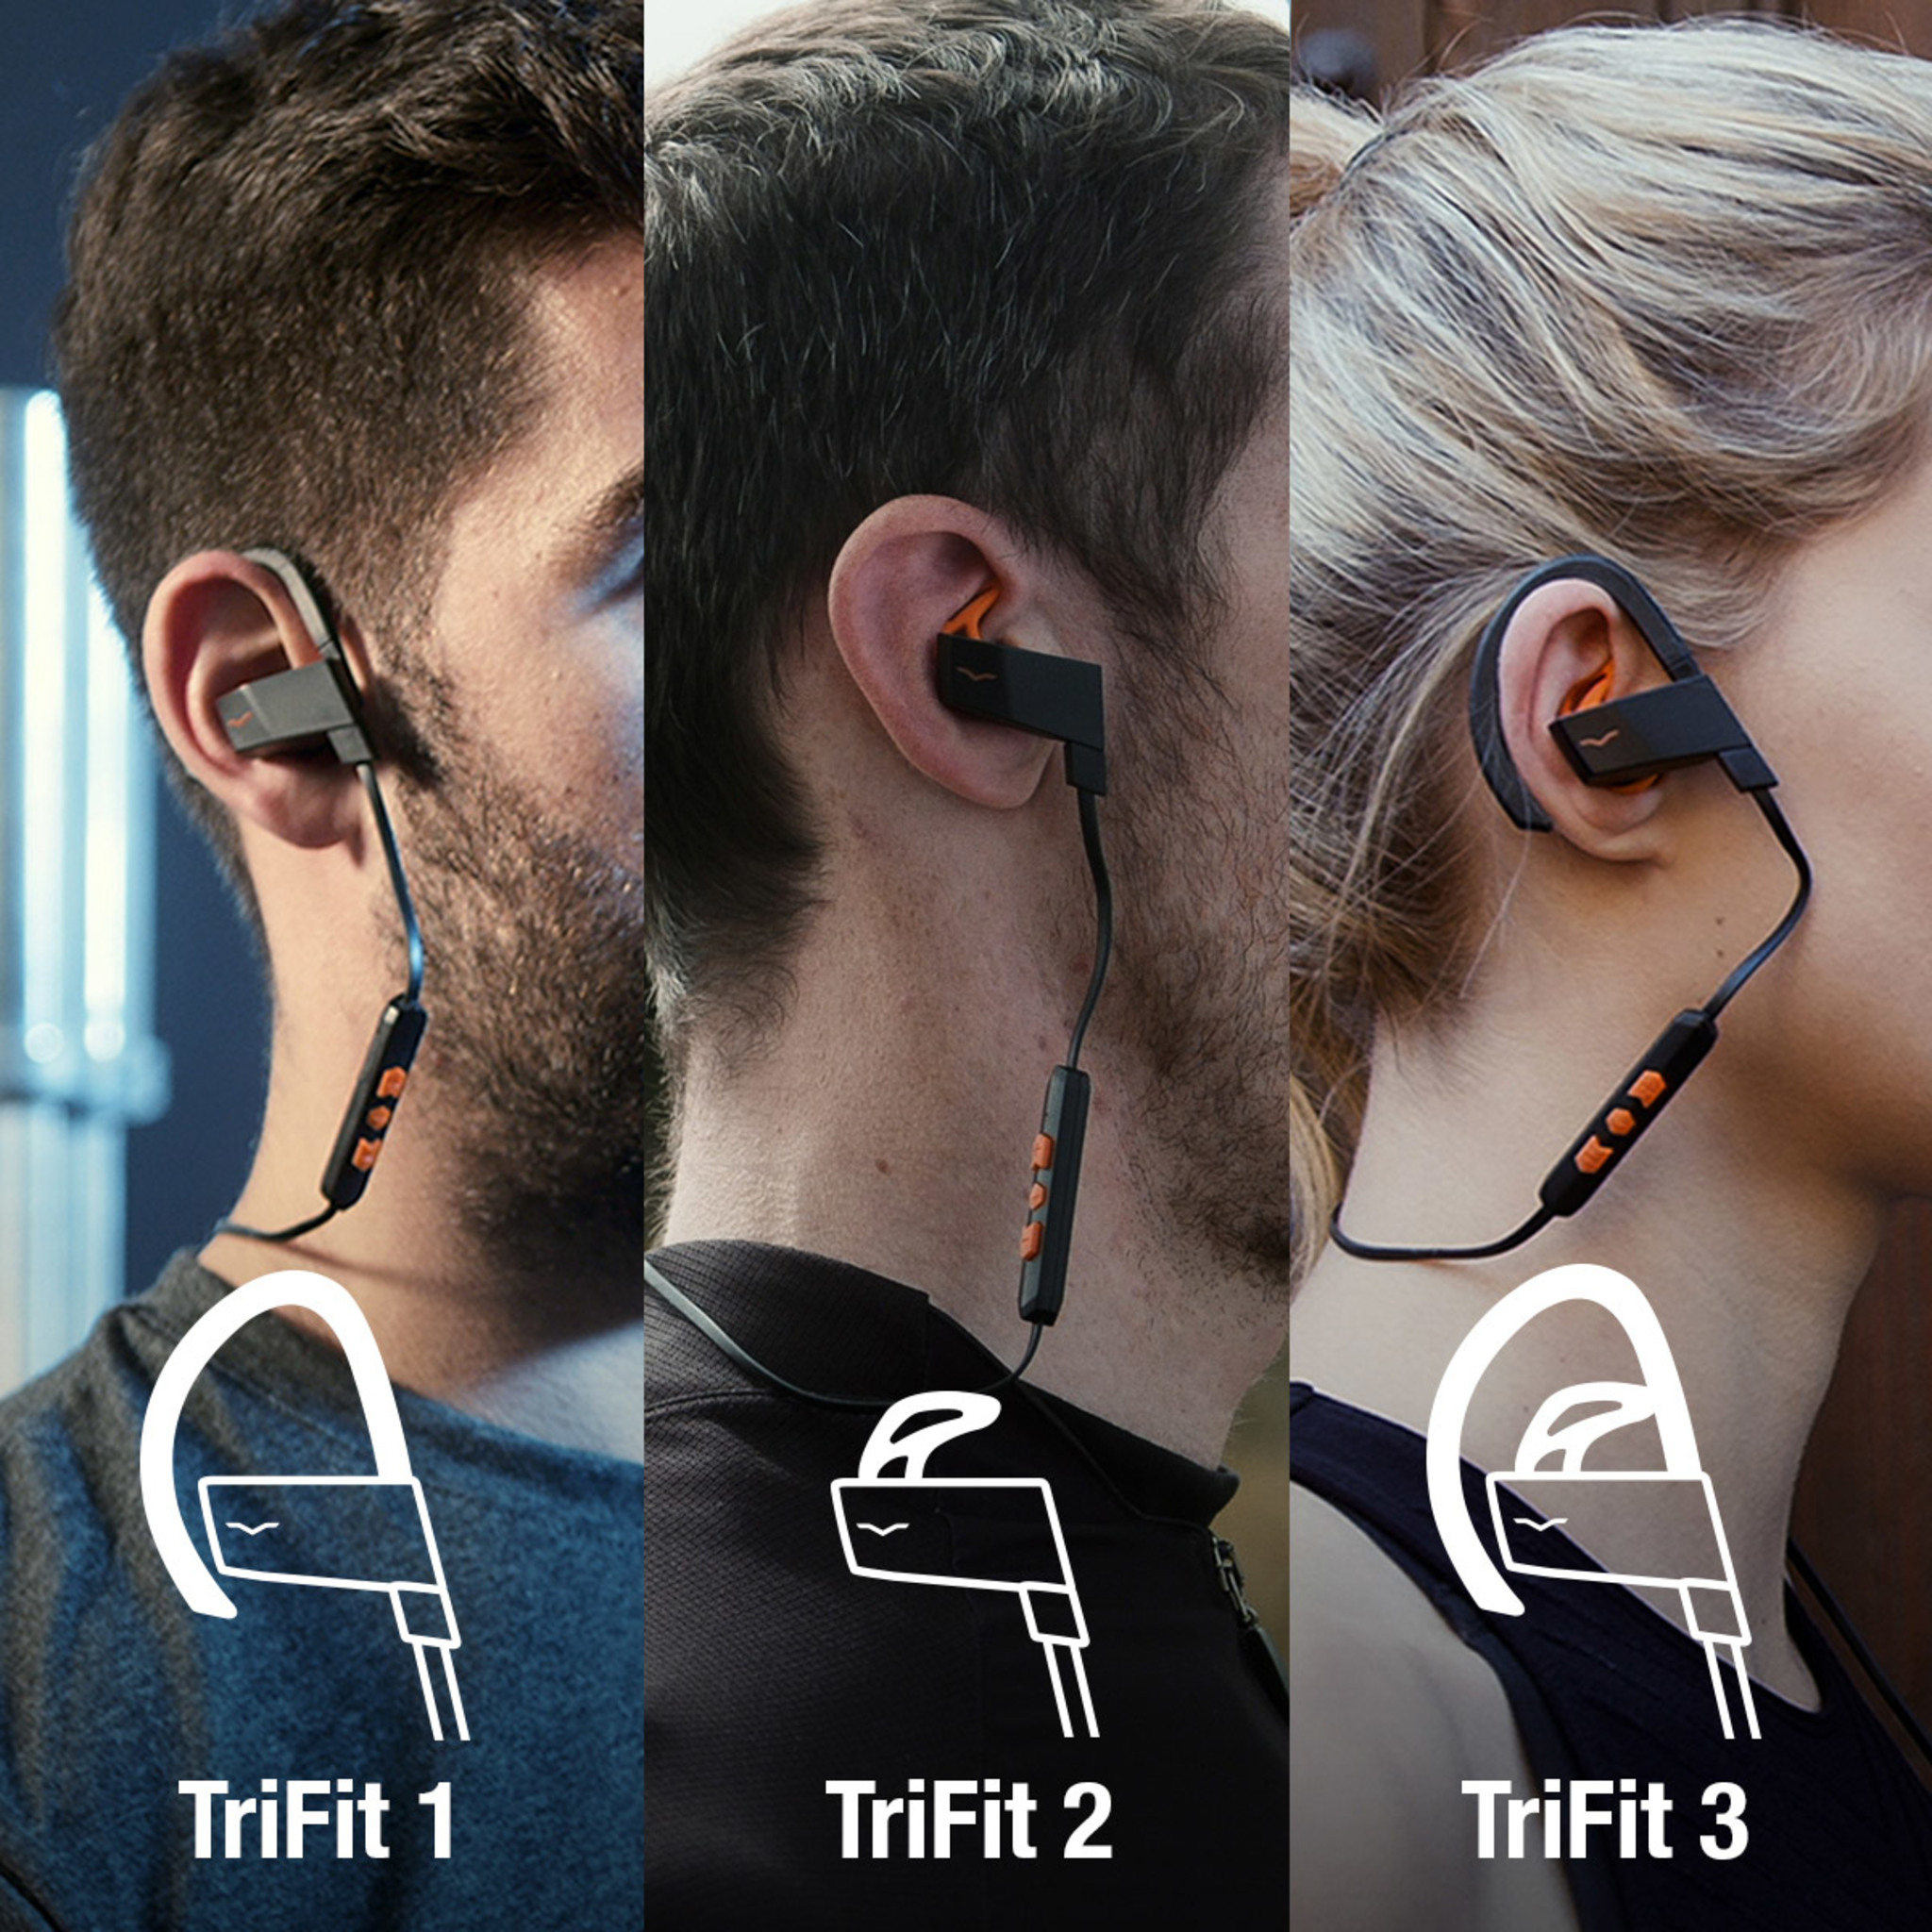 3 athletes wearing BassFit Wireless Sport In-Ear Headphones with the different TriFit designs